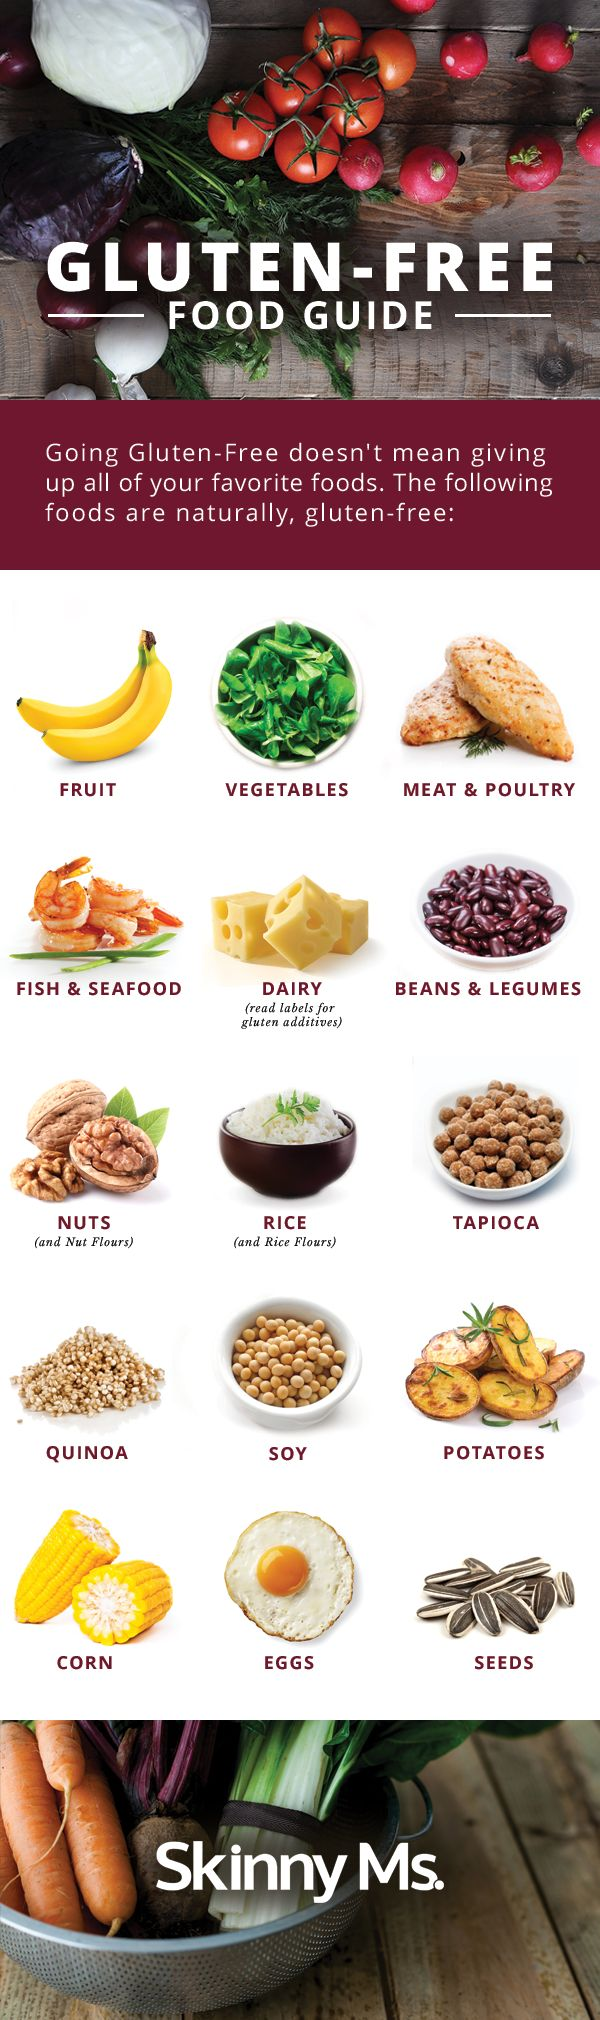 The Gluten Free Food Guide! All of these foods are naturally gluten-free.